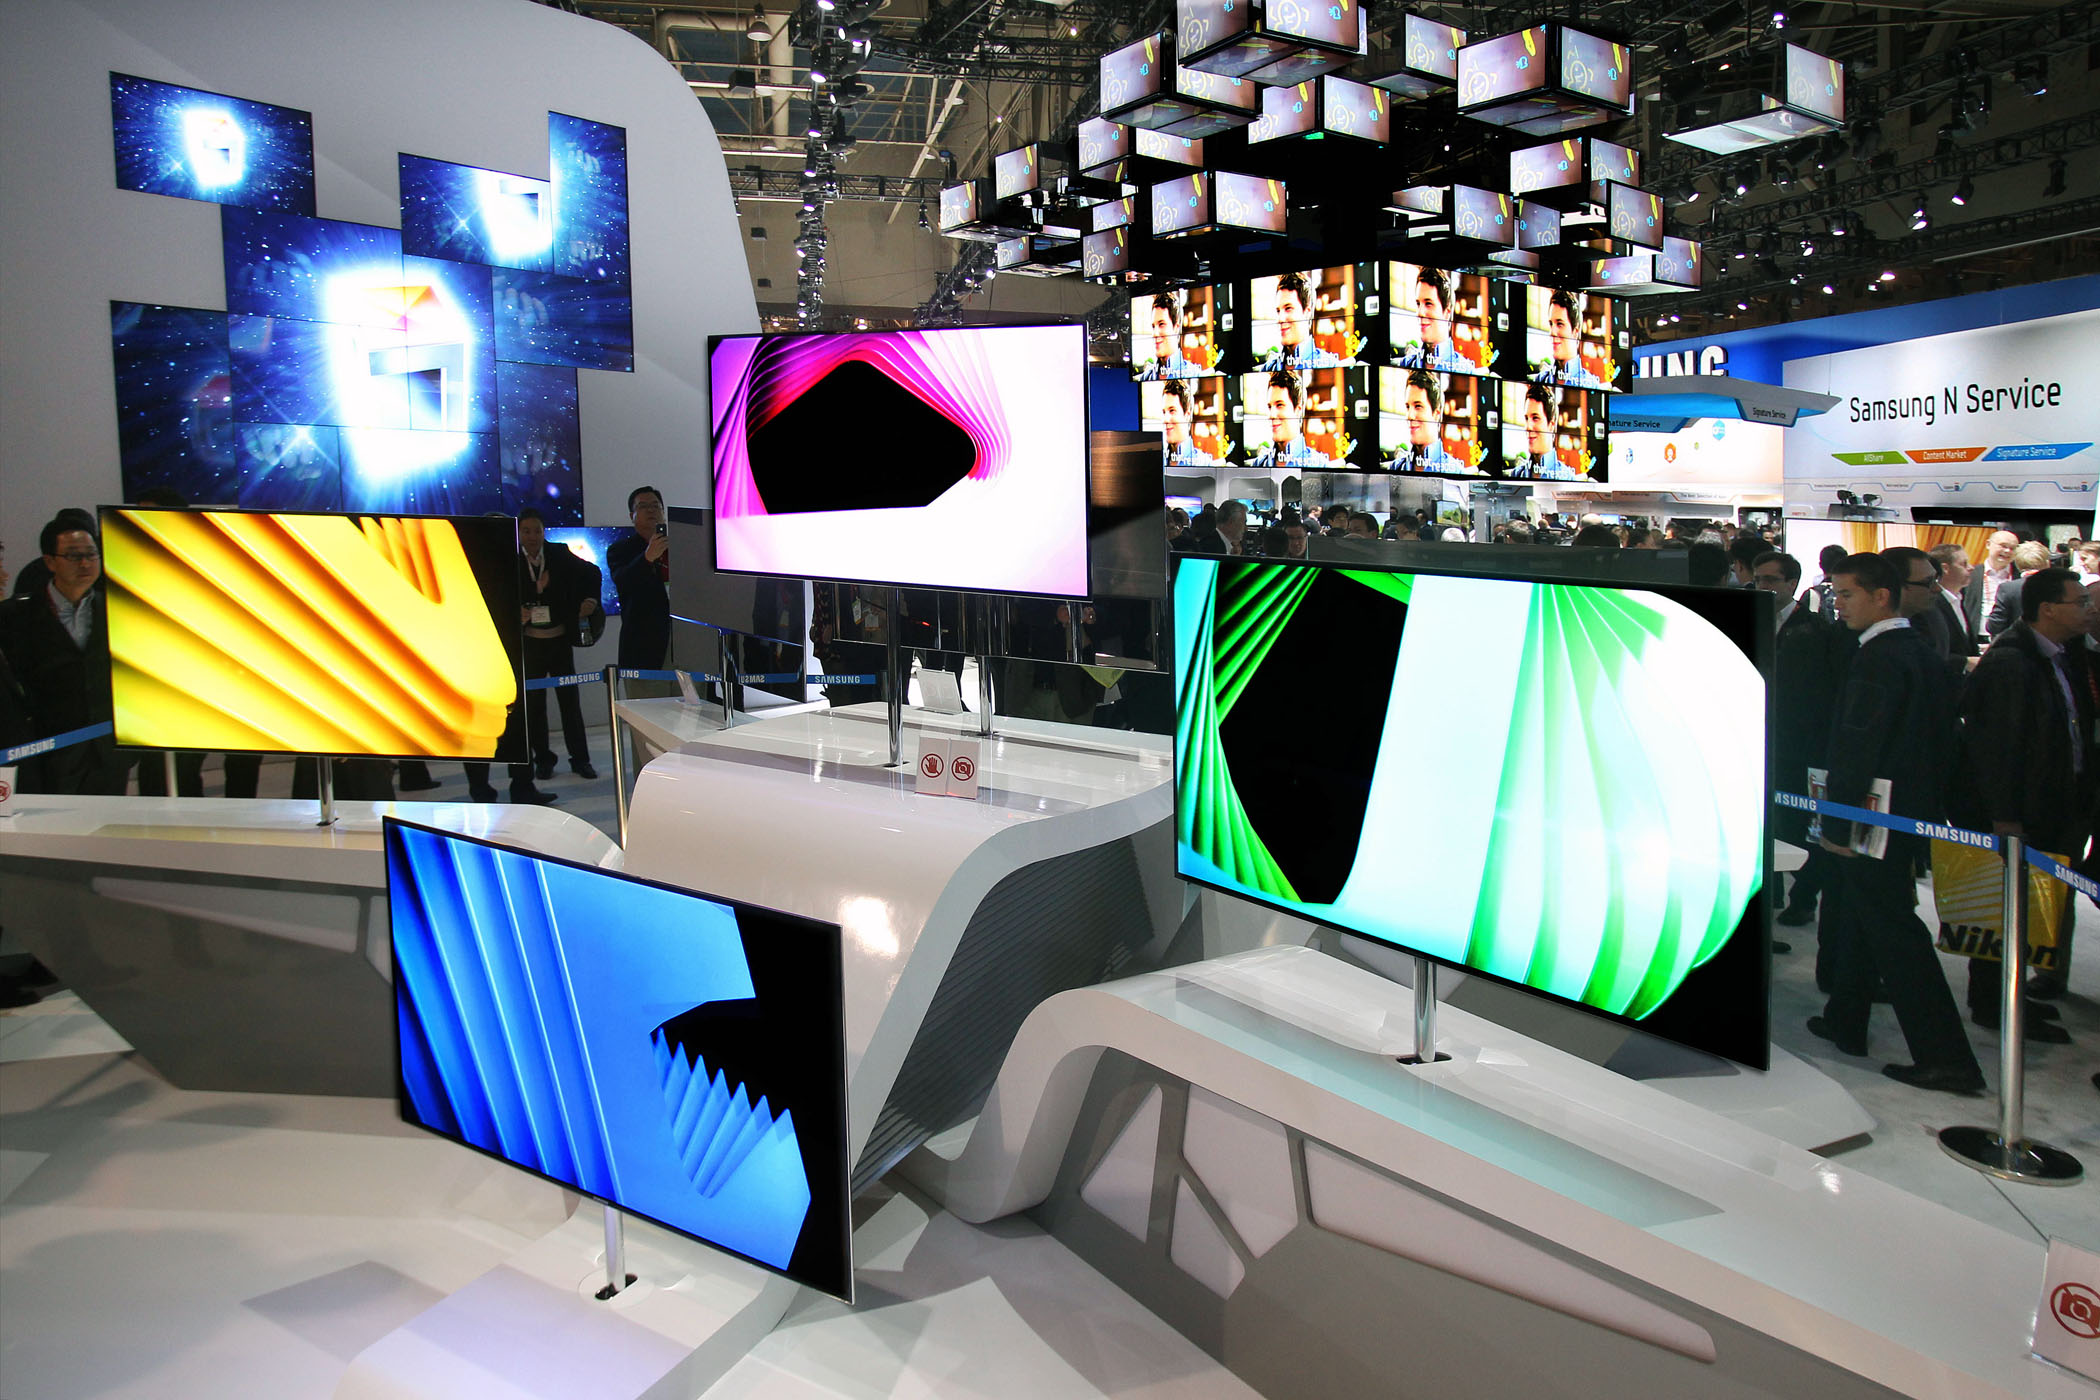 Samsung' 55-inch OLED TV display at CES 2012.